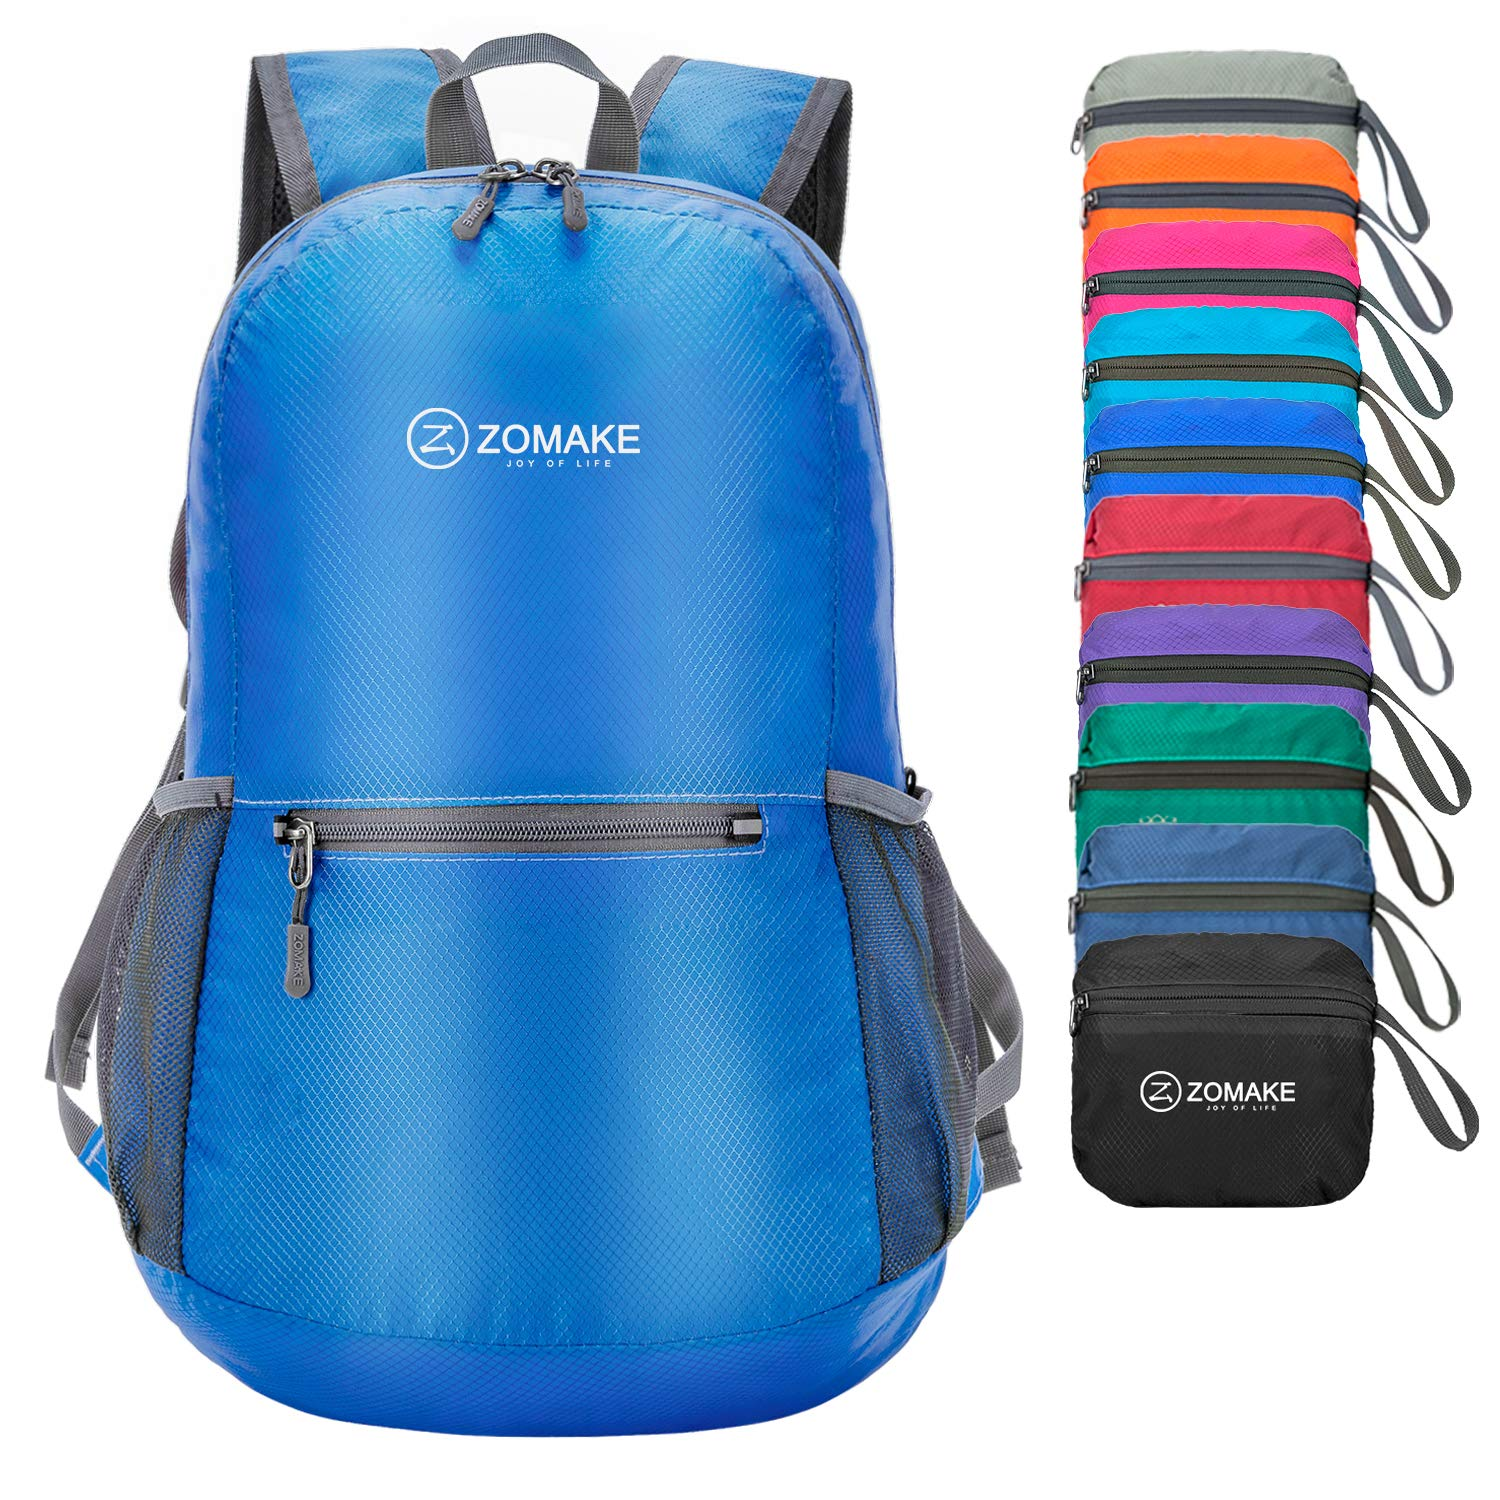 ZOMAKE Ultra Lightweight Packable Backpack Water Resistant Hiking  Daypack 3a5def2ad3a62